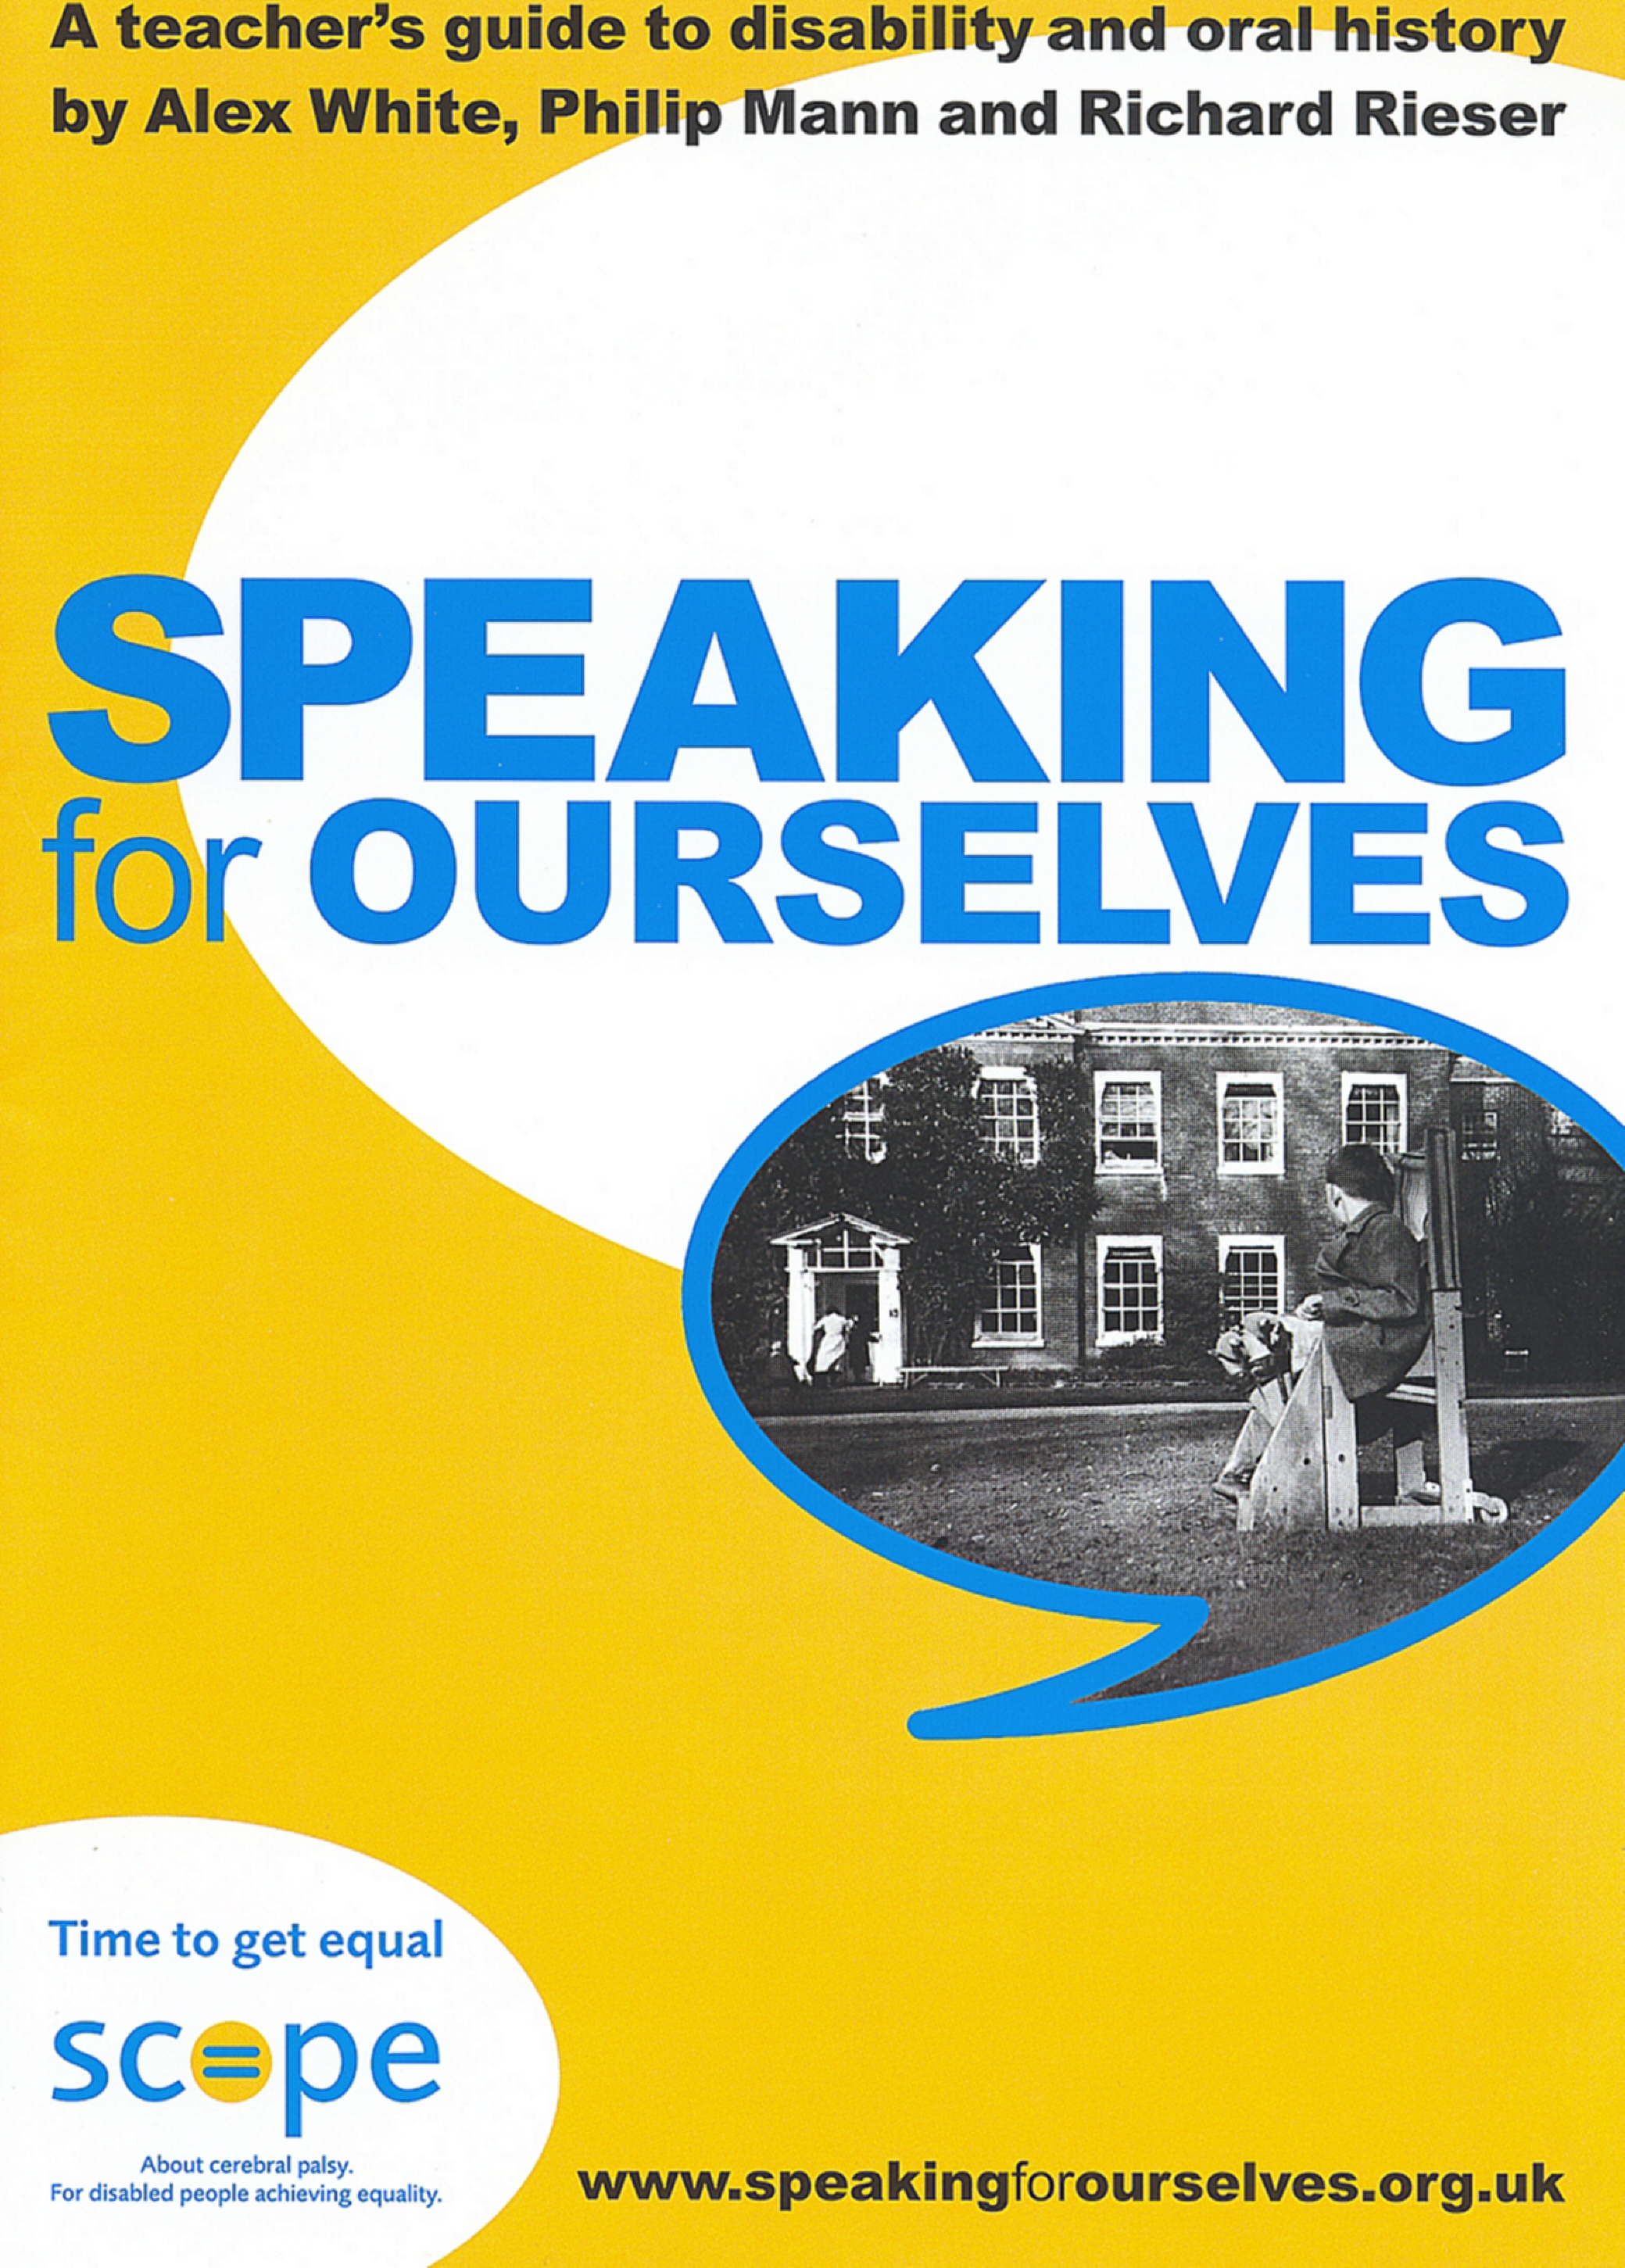 Speaking for ourselves leaflet. Image courtesy of Scope.